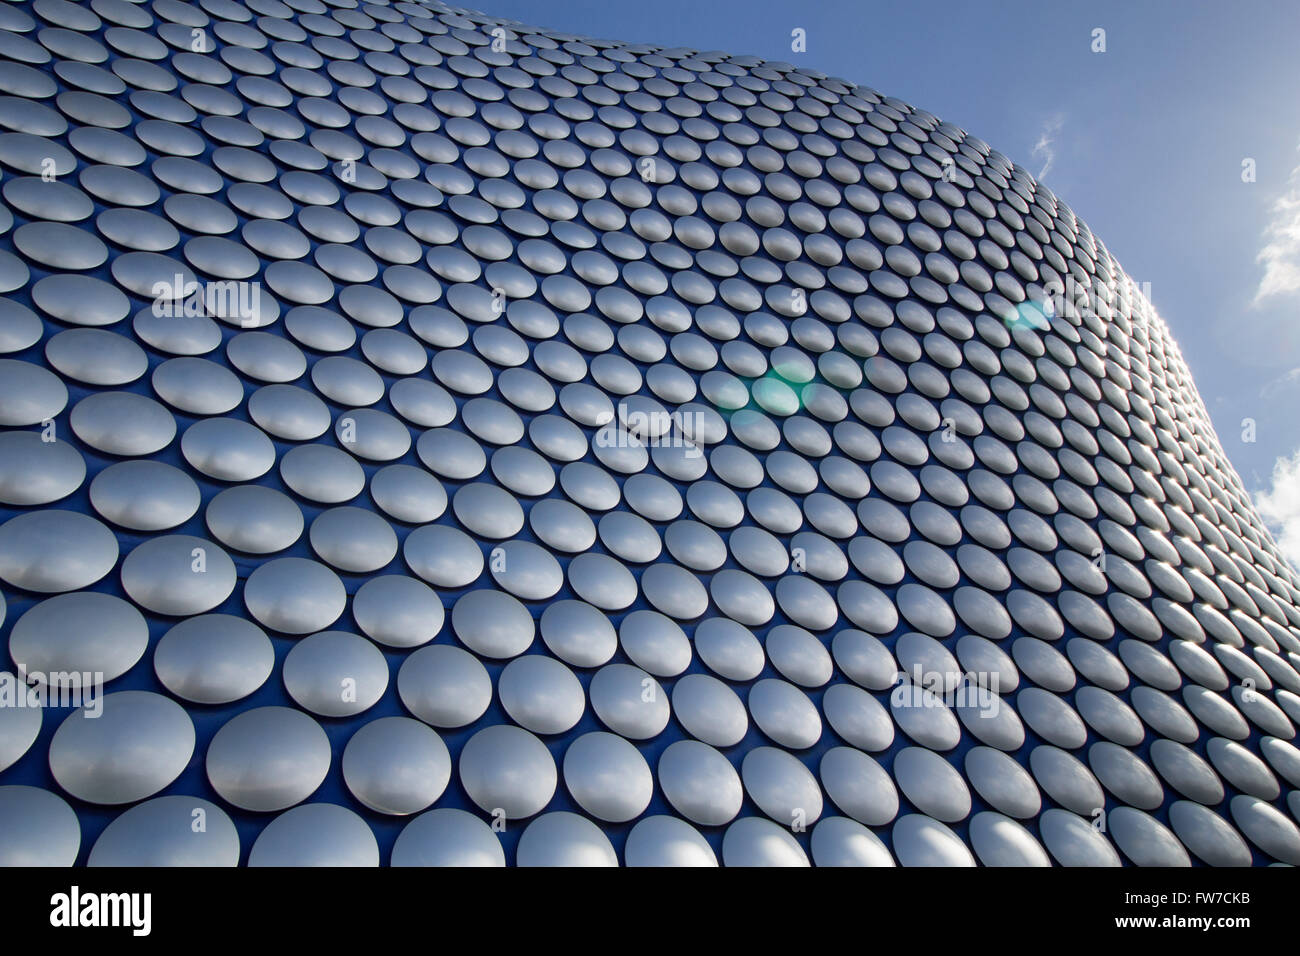 Silver discs adorning the exterior of the Selfridges building in Birmingham Bullring shopping centre - Stock Image